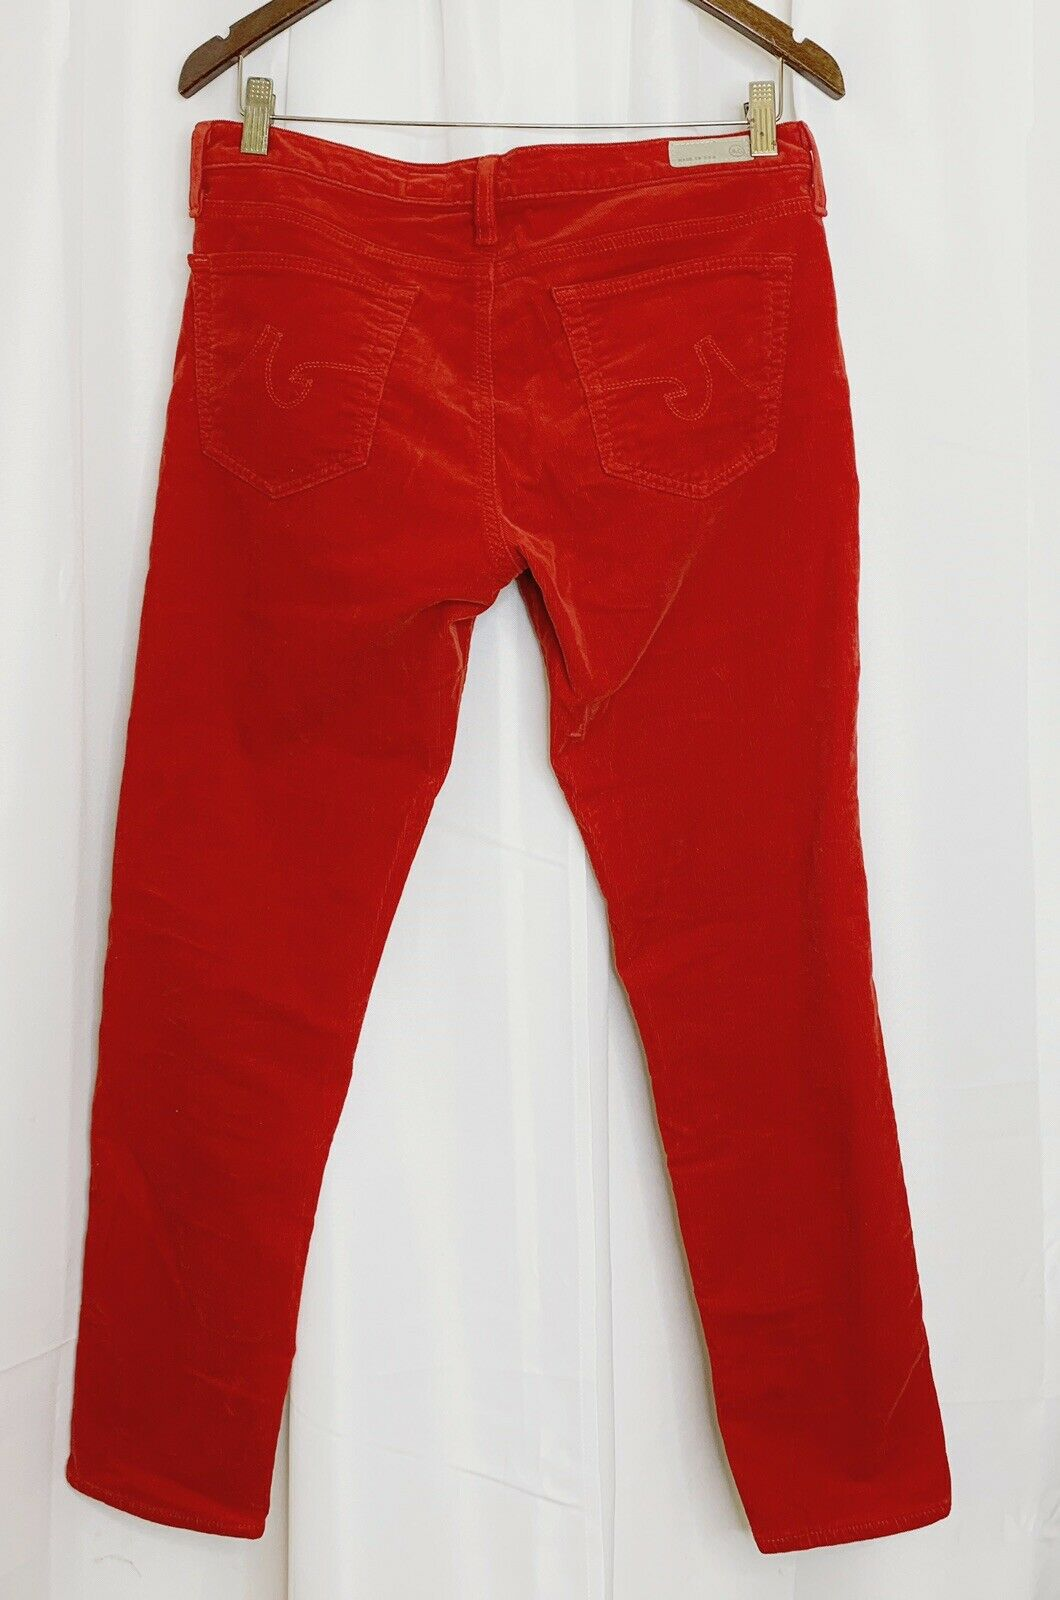 AG Adriano goldschmied The Stevie Ankle Slim Straight Leg Red Womens Sz. 30R